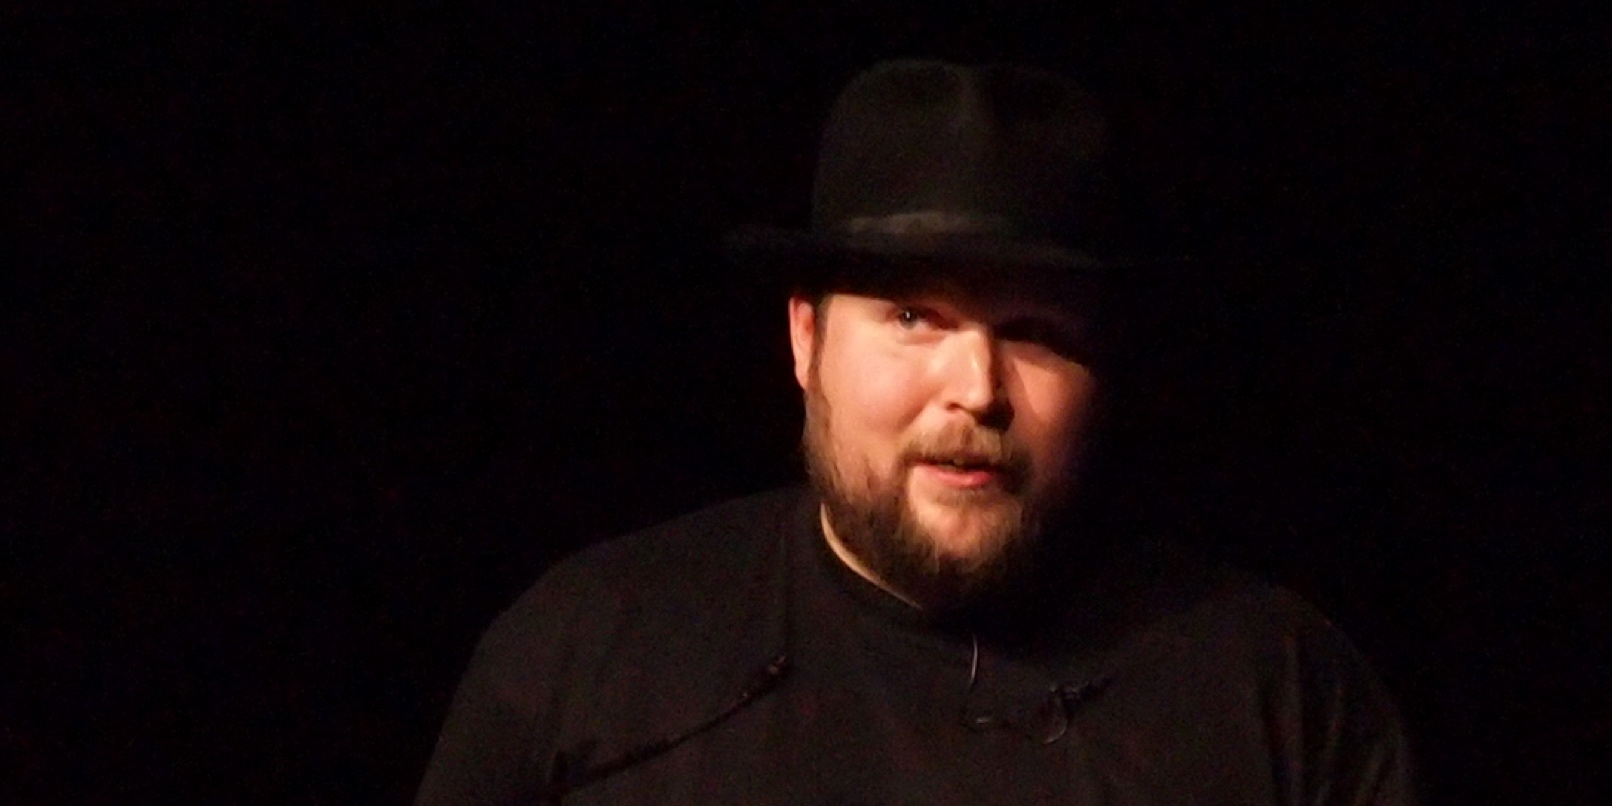 Minecraft creator Notch shares the darker side of a big exit